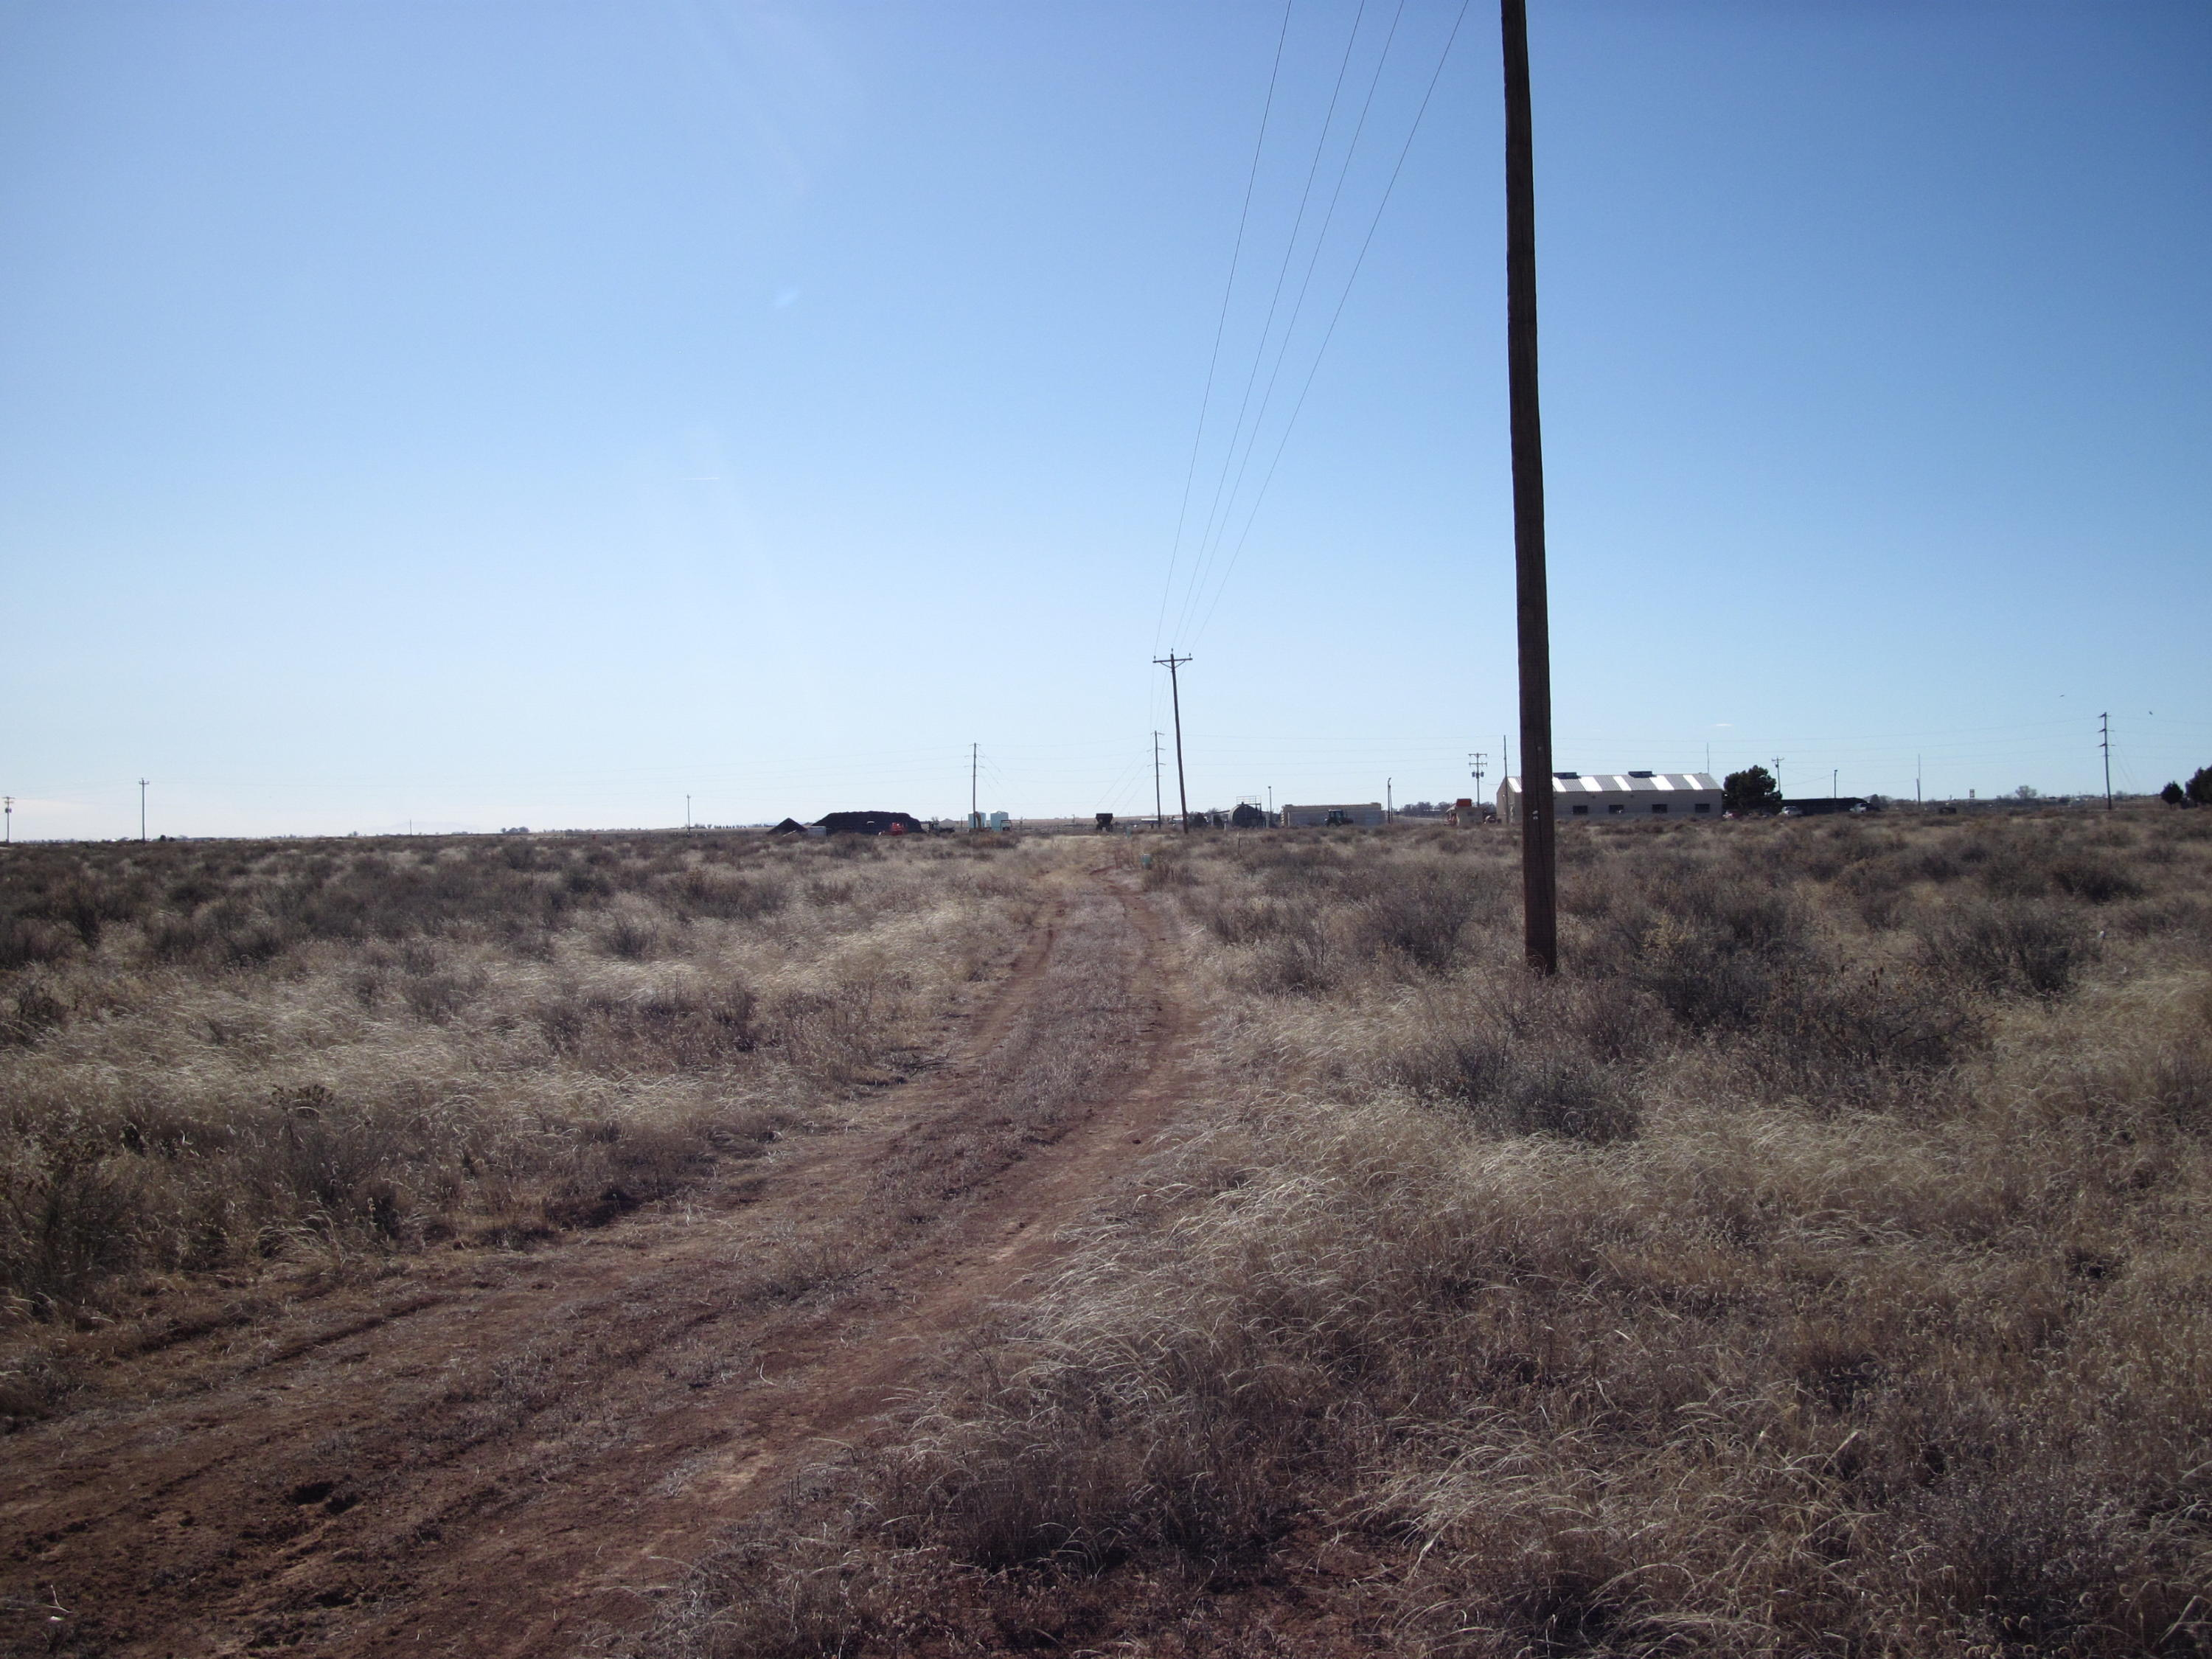 Fourth St, Salt Mission Tr. 23 Avenue, Moriarty, NM 87035 - Moriarty, NM real estate listing